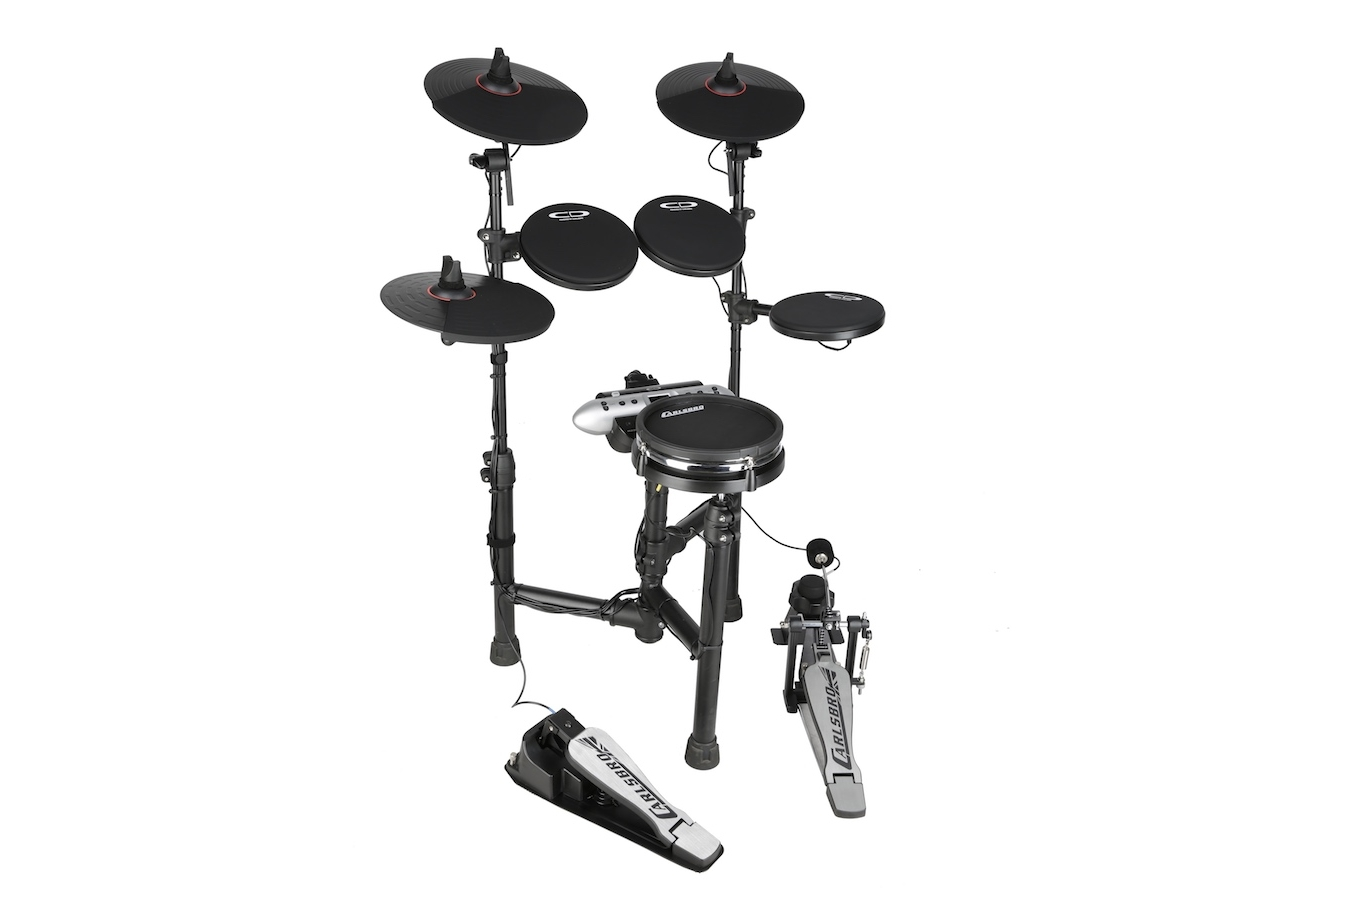 Carlsbro CSD130M mesh snare electronic drum set left side